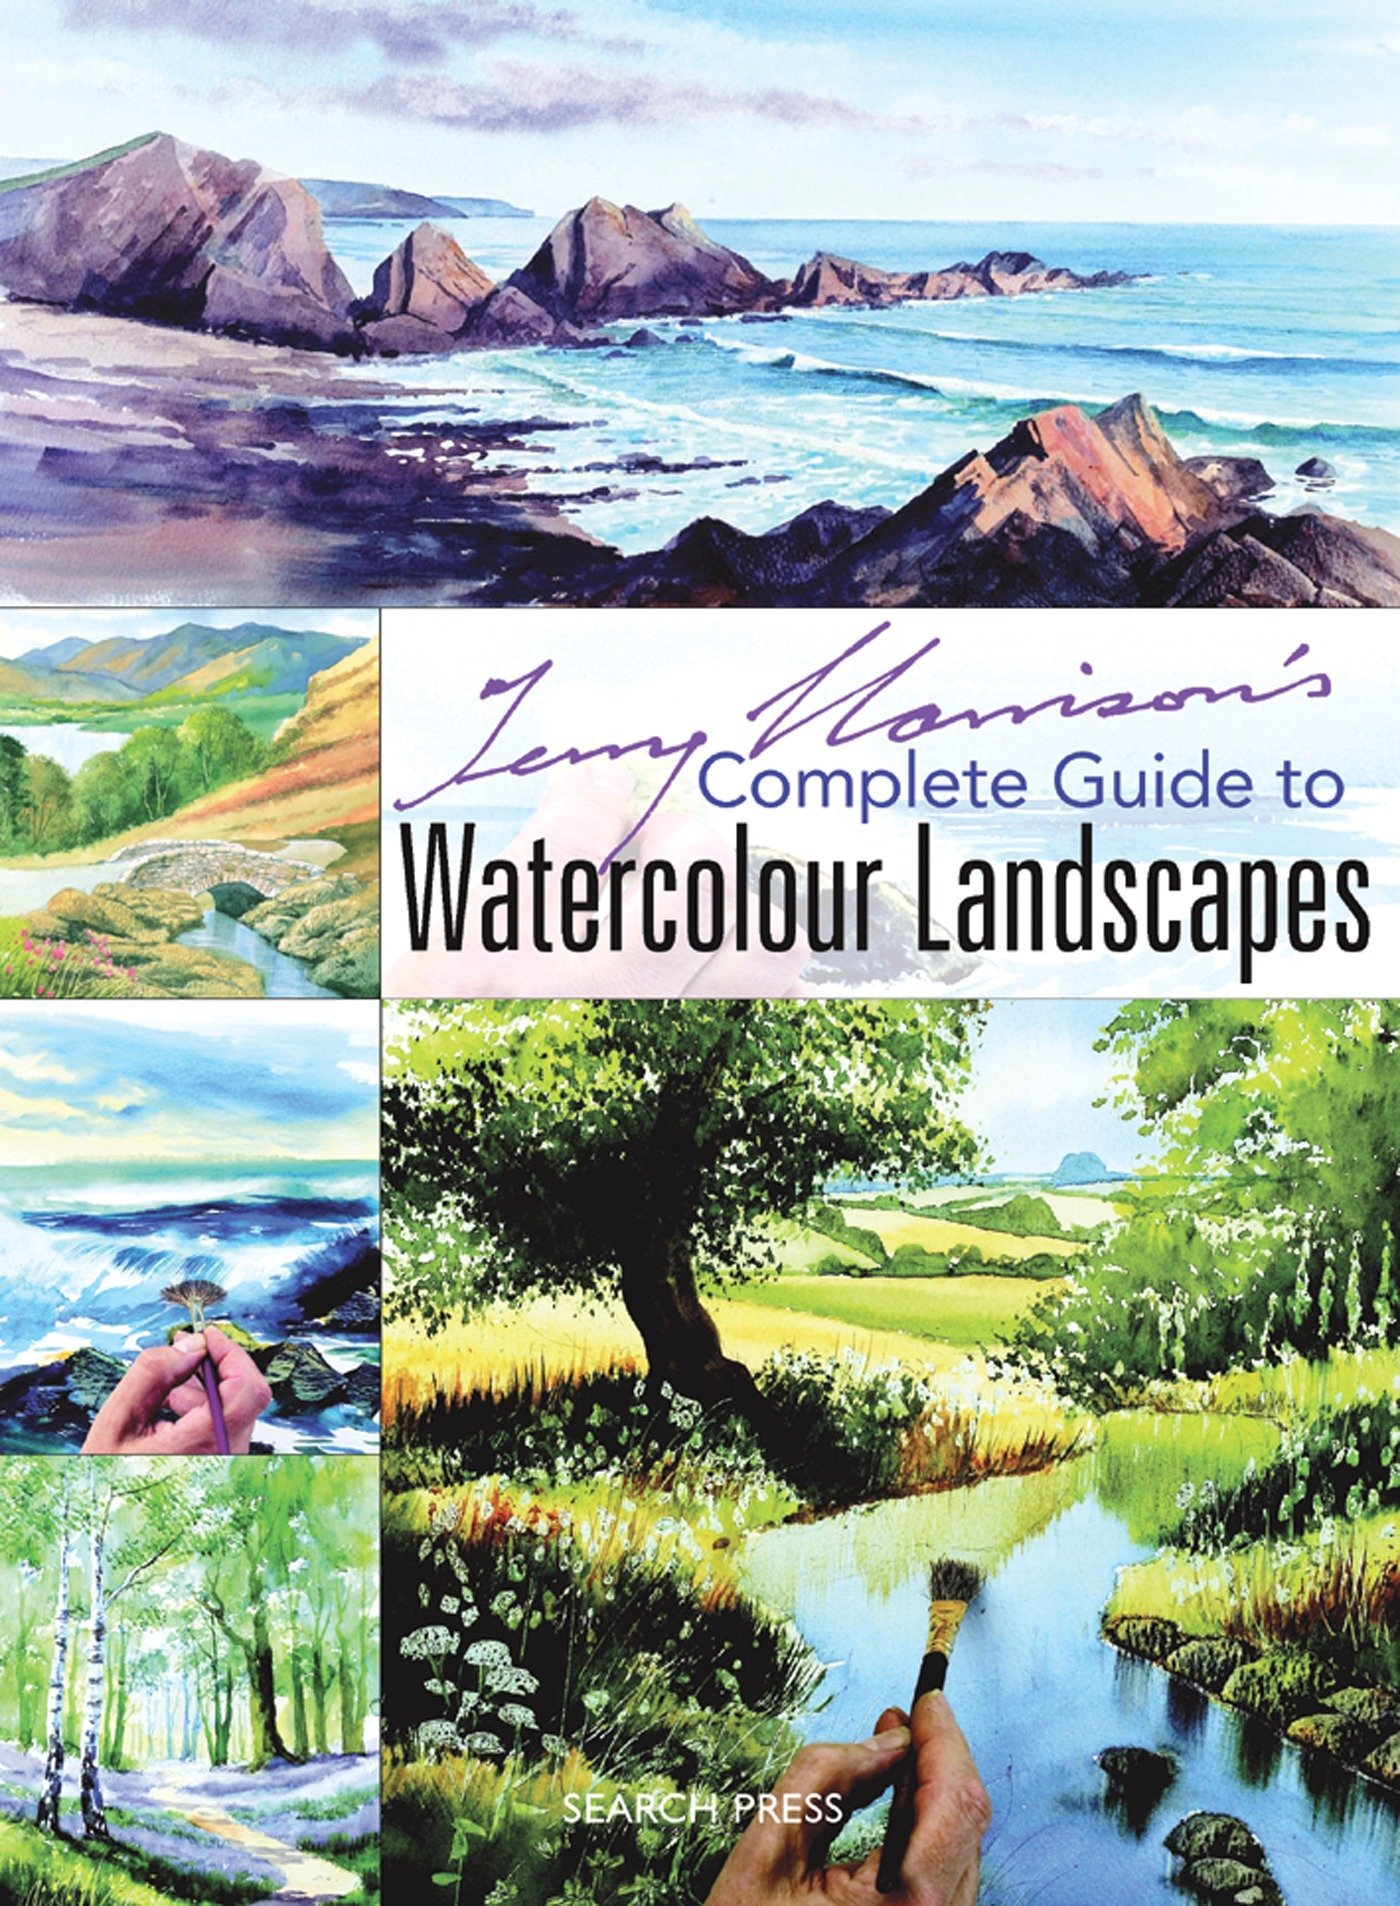 Download Terry Harrison's Complete Guide to Watercolour Landscapes PDF